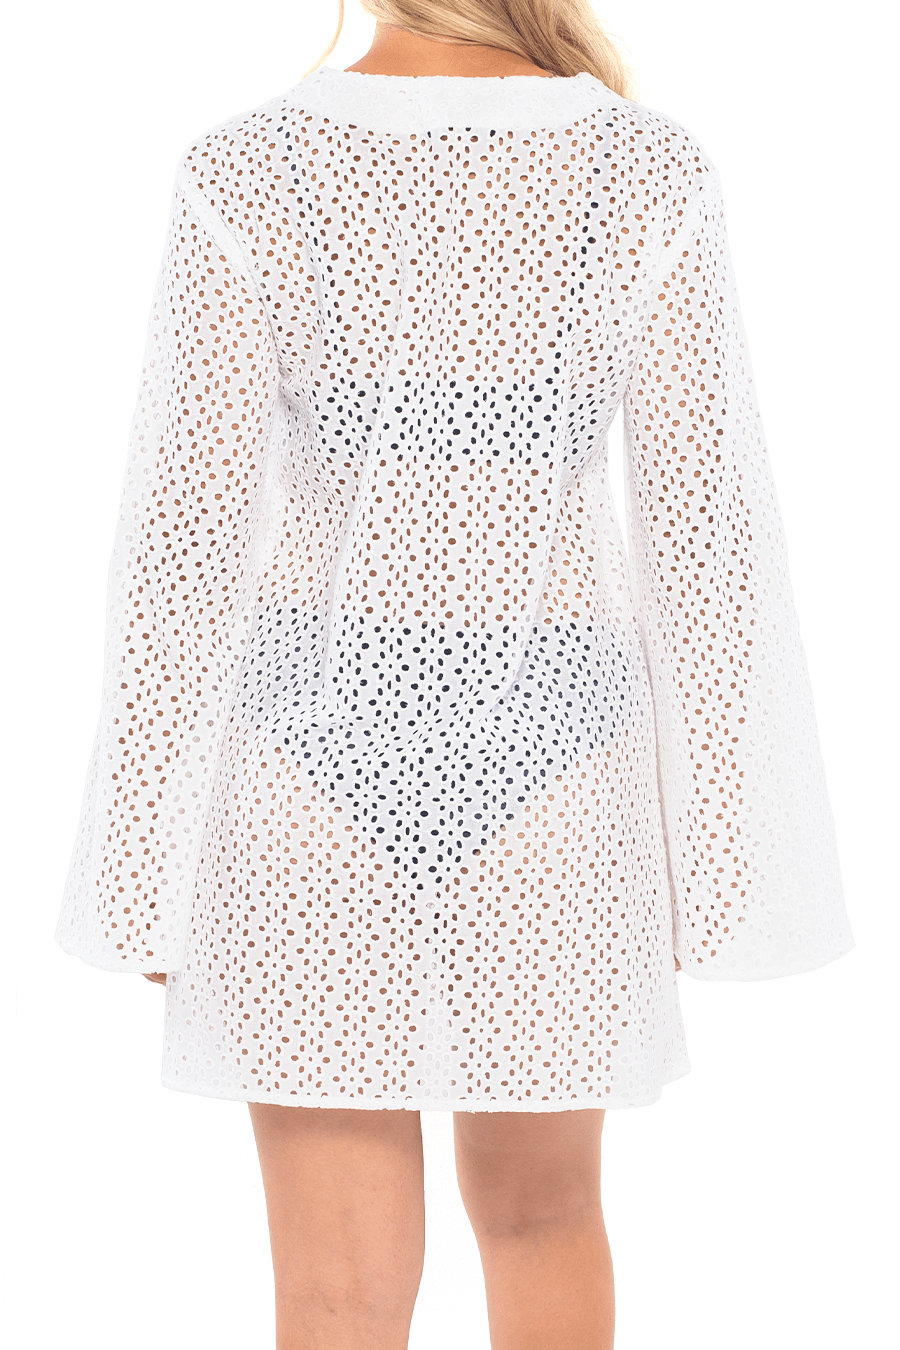 Milan Mini Dress - Floral Lace